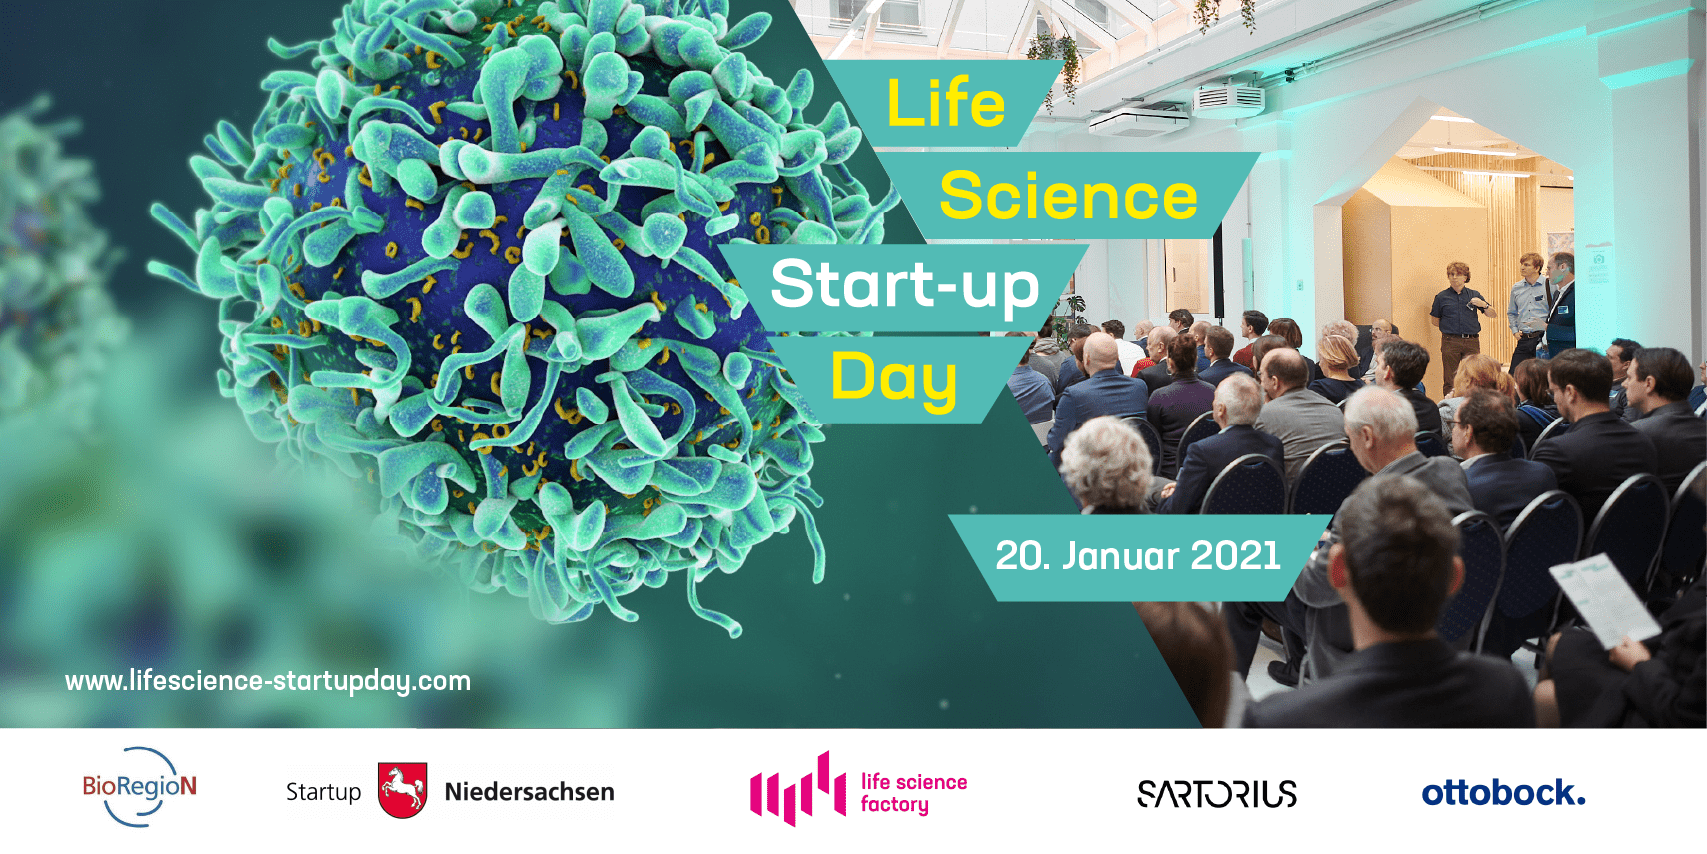 2nd Life Science Start-up Day with start-up project from IFNANO